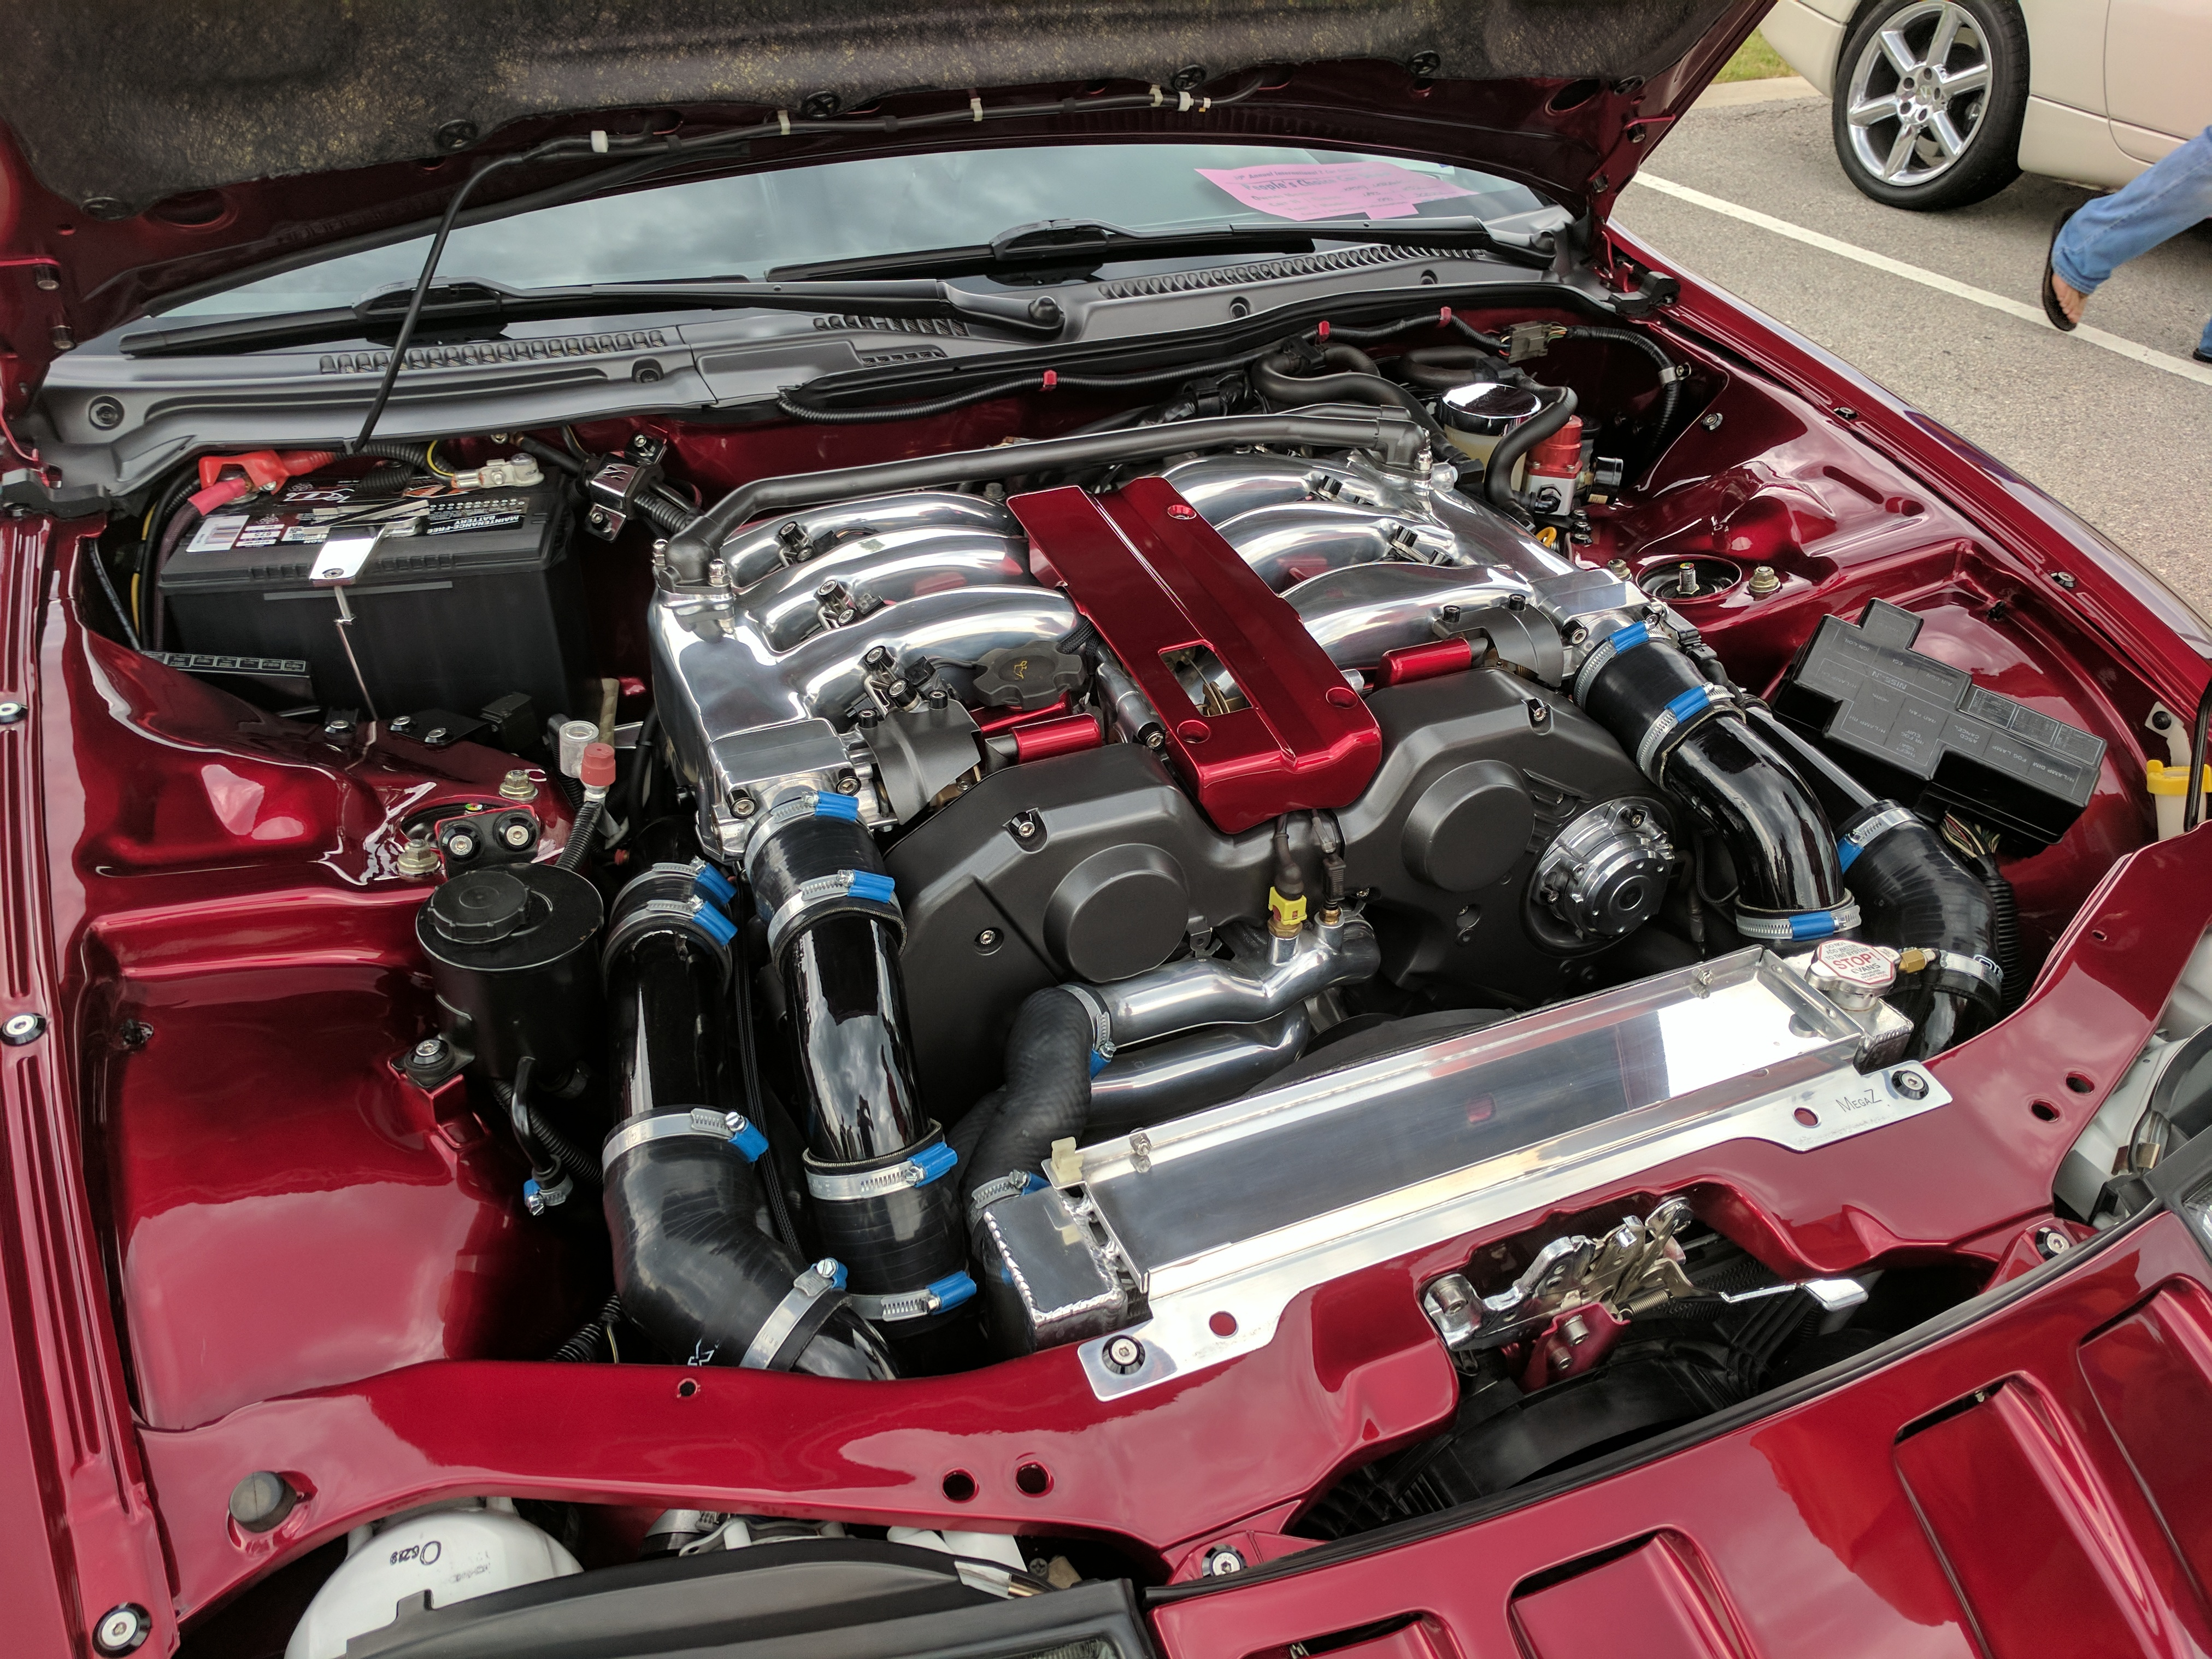 Z32's would win the engine bay competition any day